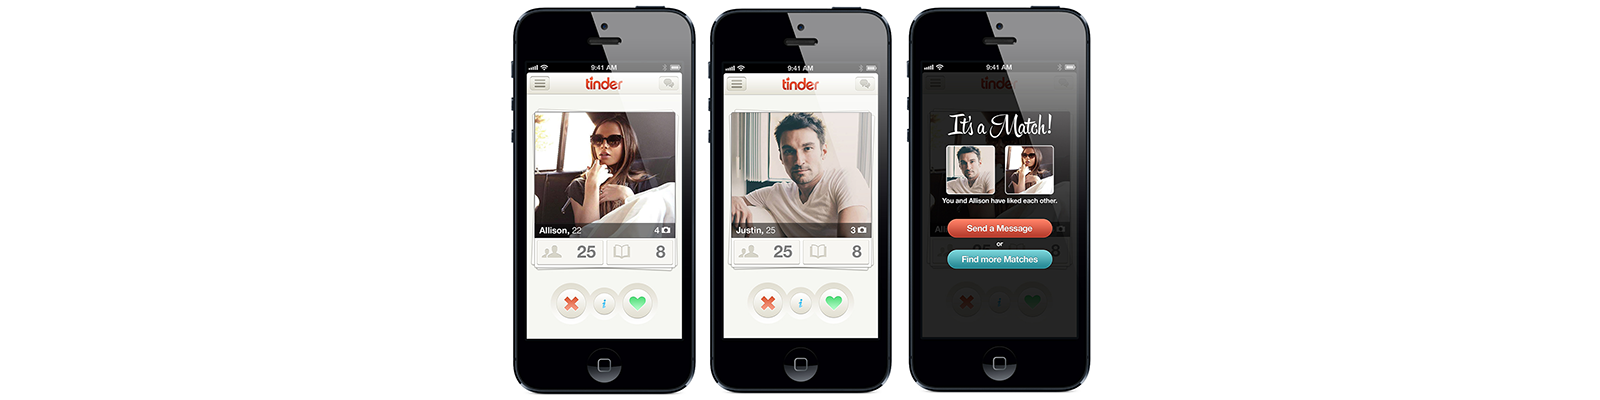 tinder application development